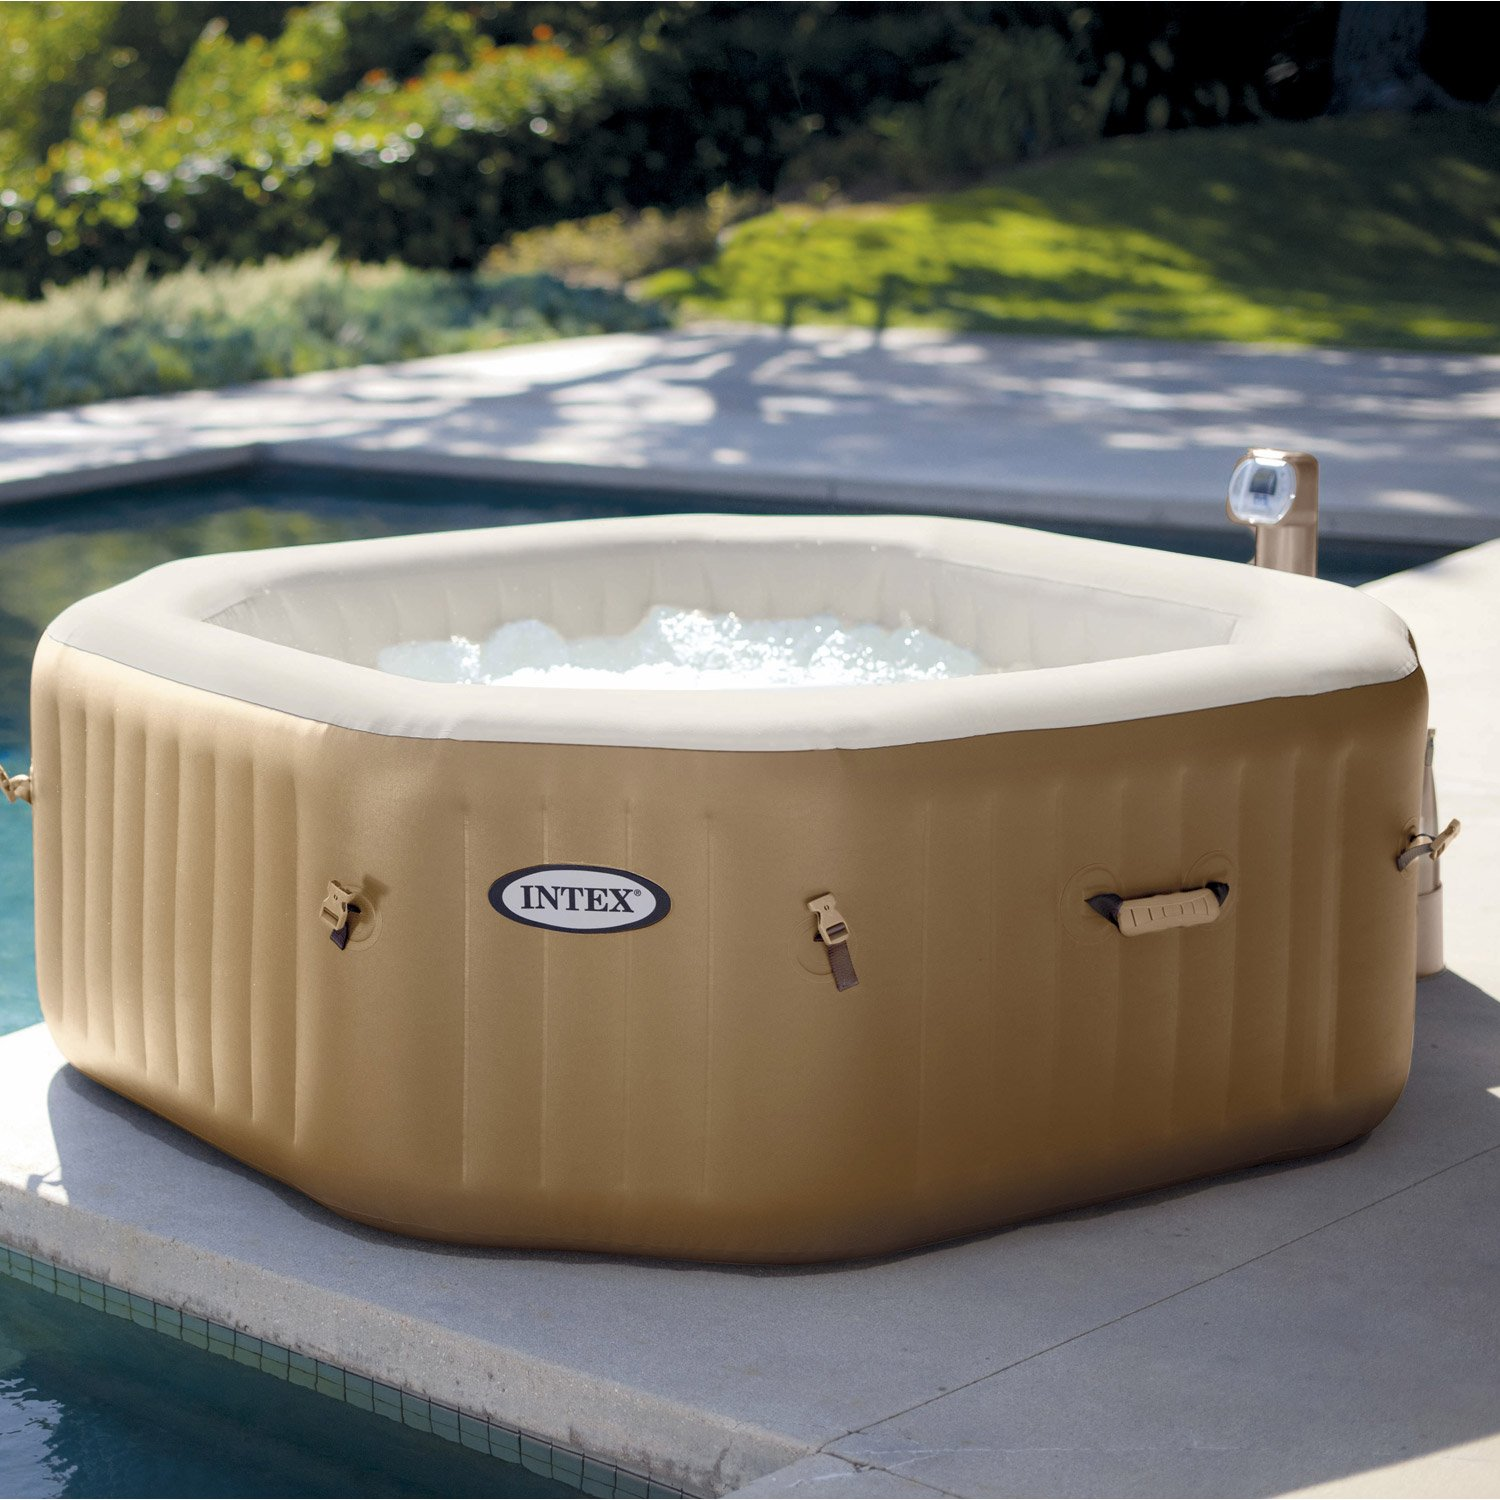 Leroy Merlin Spa Intex ▷ spa intex leroy merlin : infos et ressources